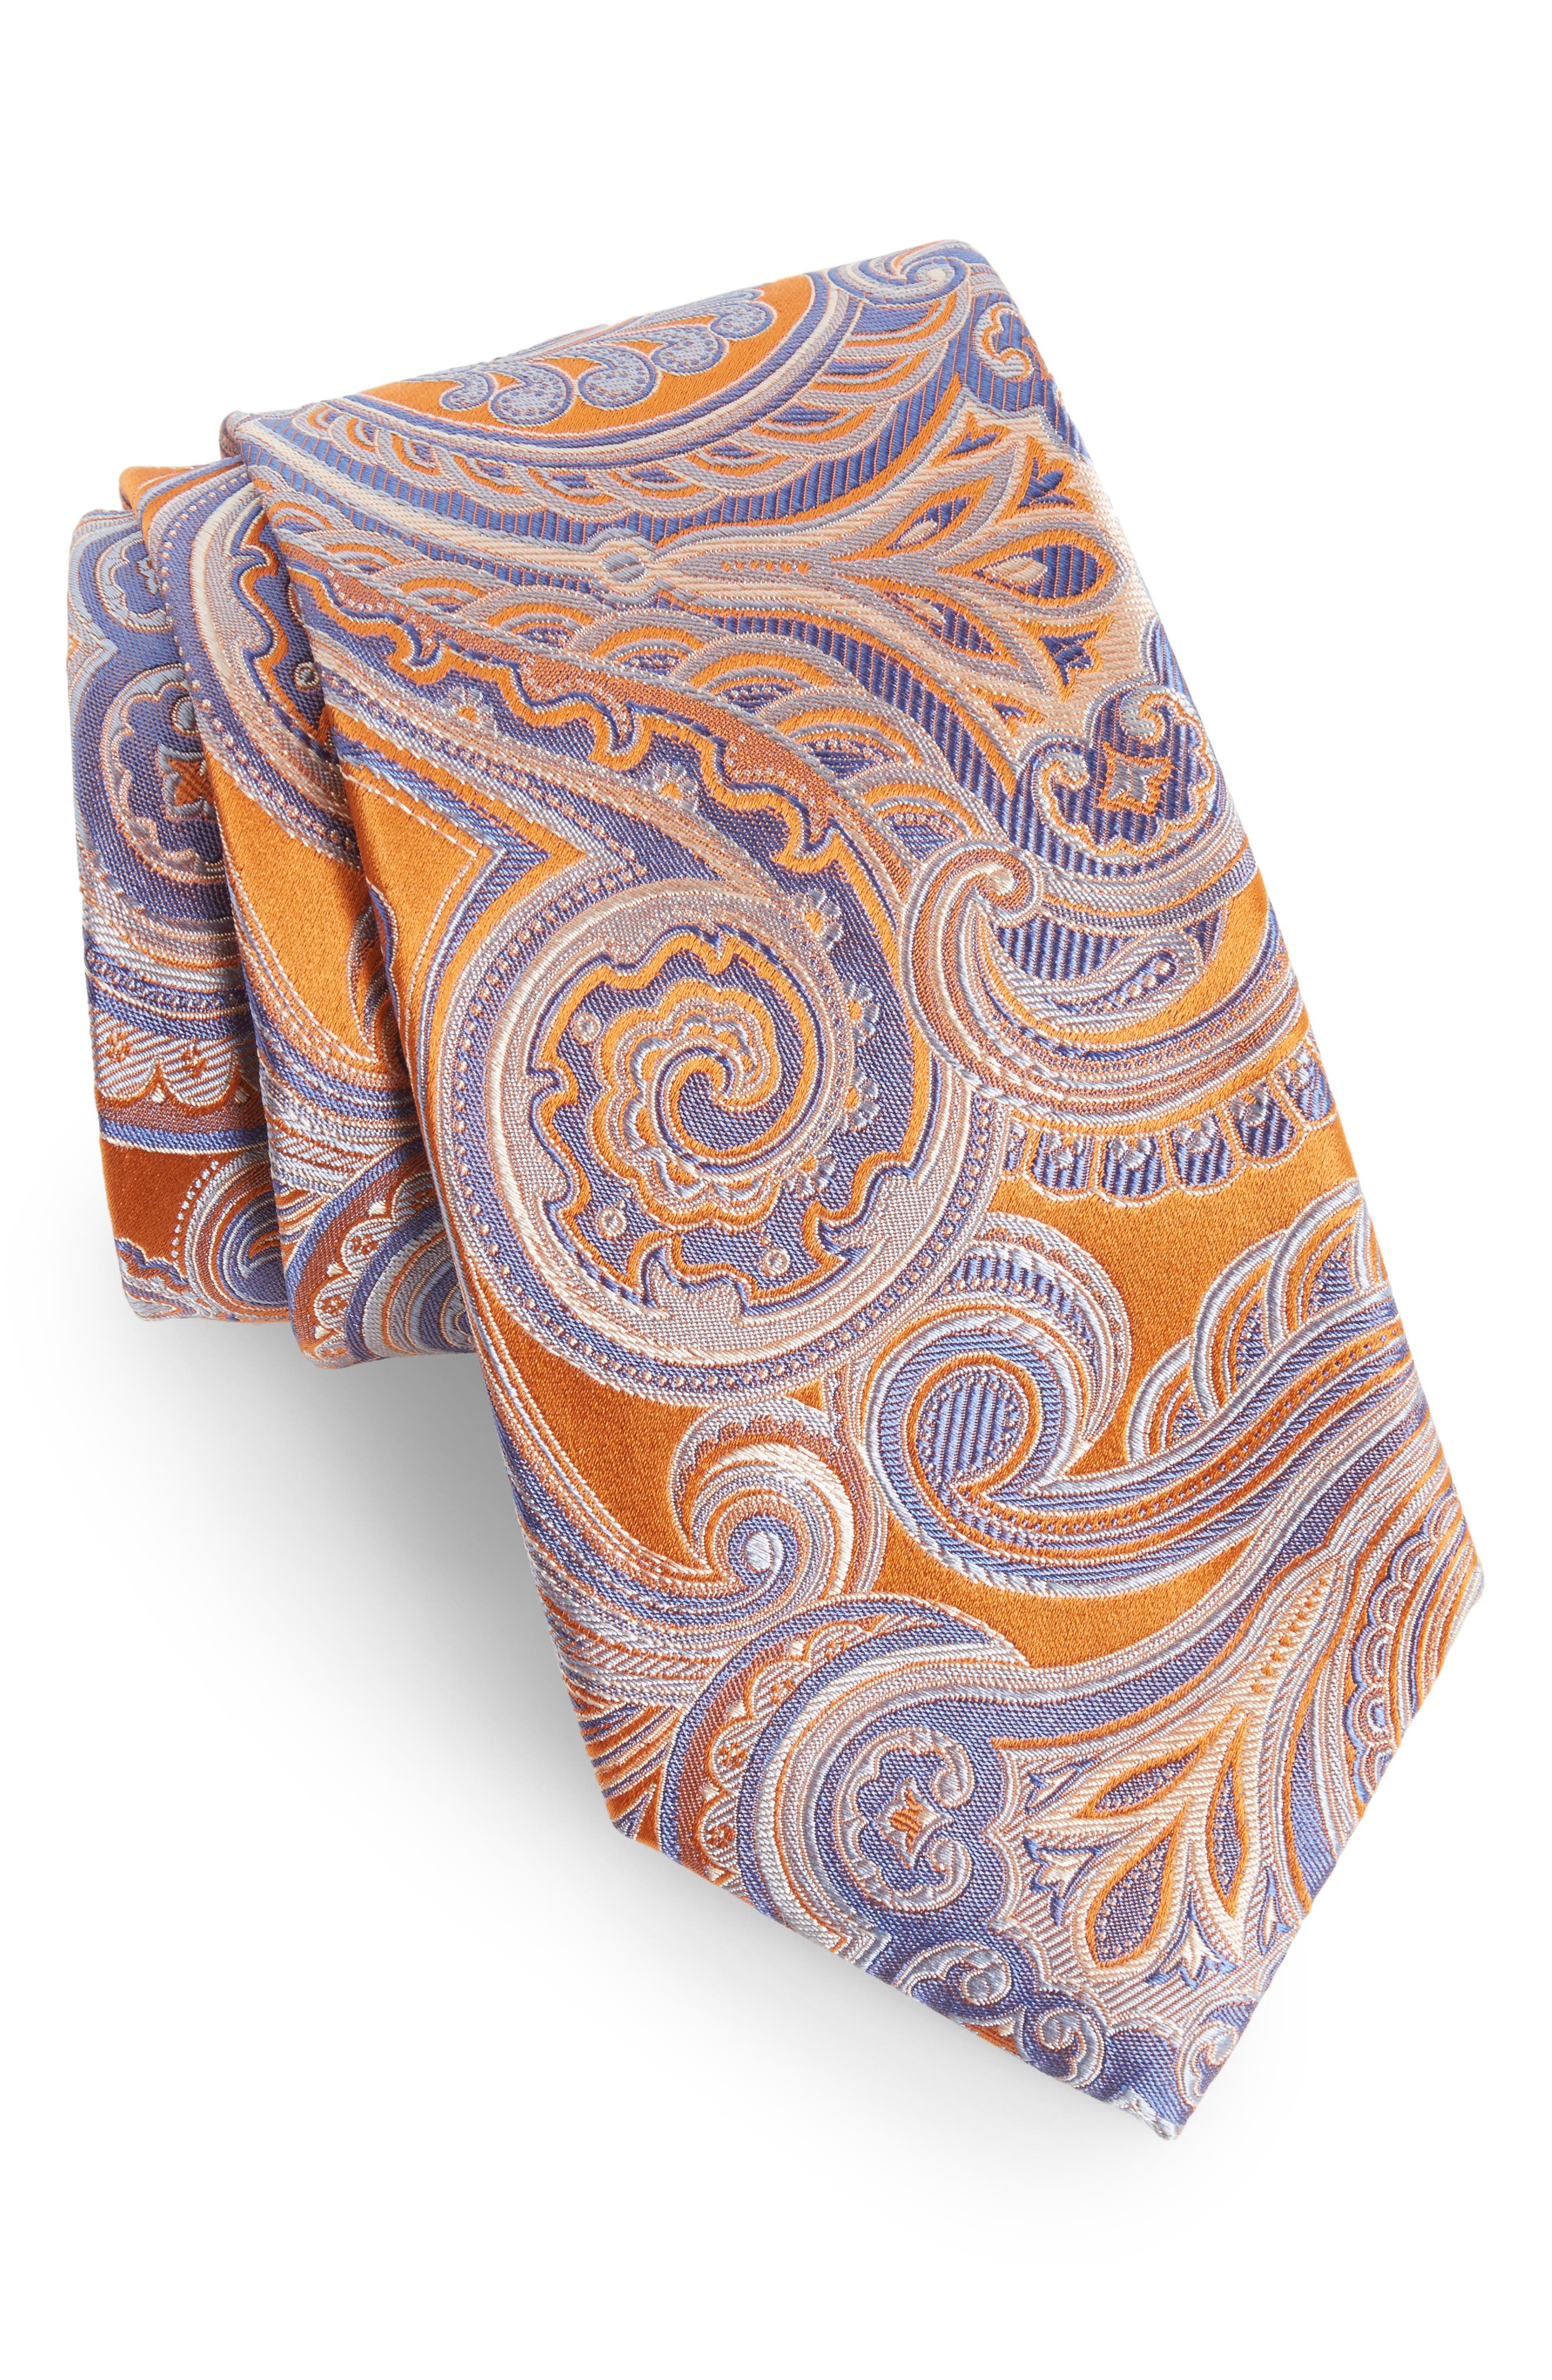 Paisley Silk Tie,                         Main,                         color, Orange